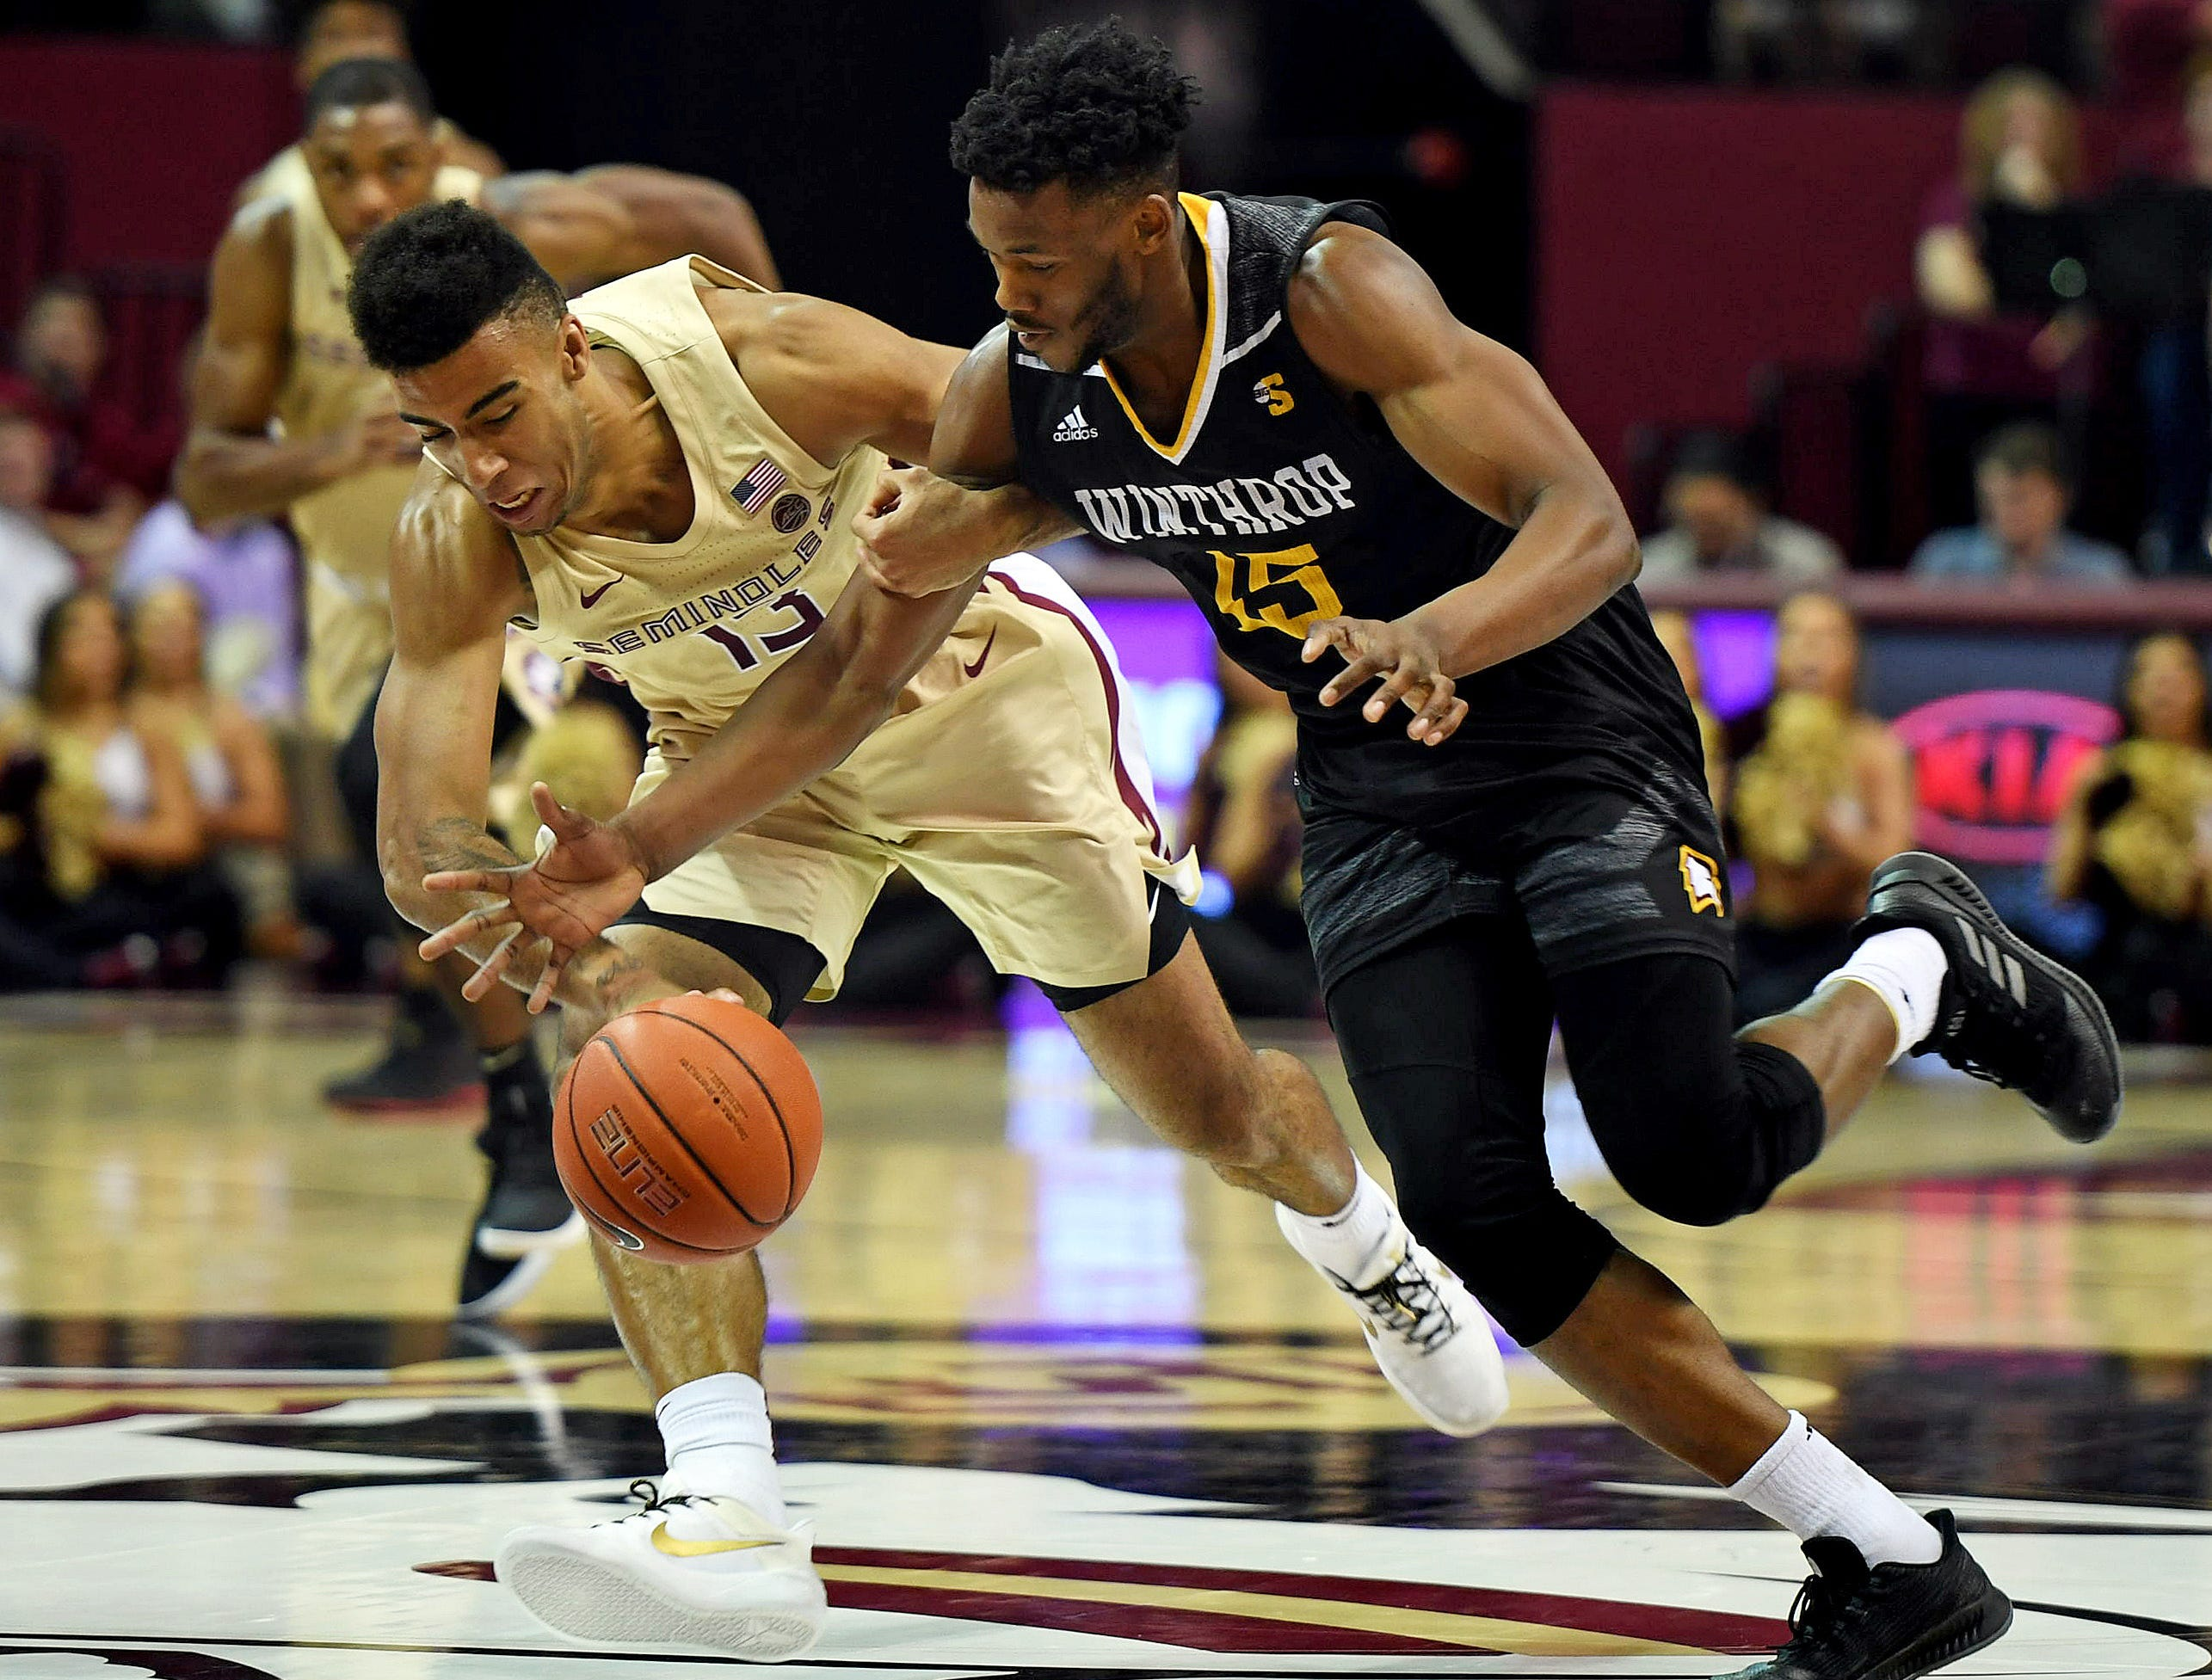 Jan 1, 2019; Tallahassee, FL, USA; Florida State Seminoles guard Anthony Polite (13) battles for a loose ball with Winthrop Eagles forward Jermaine Ukaegbu (15) during the game at Donald L. Tucker Center. Mandatory Credit: Melina Myers-USA TODAY Sports